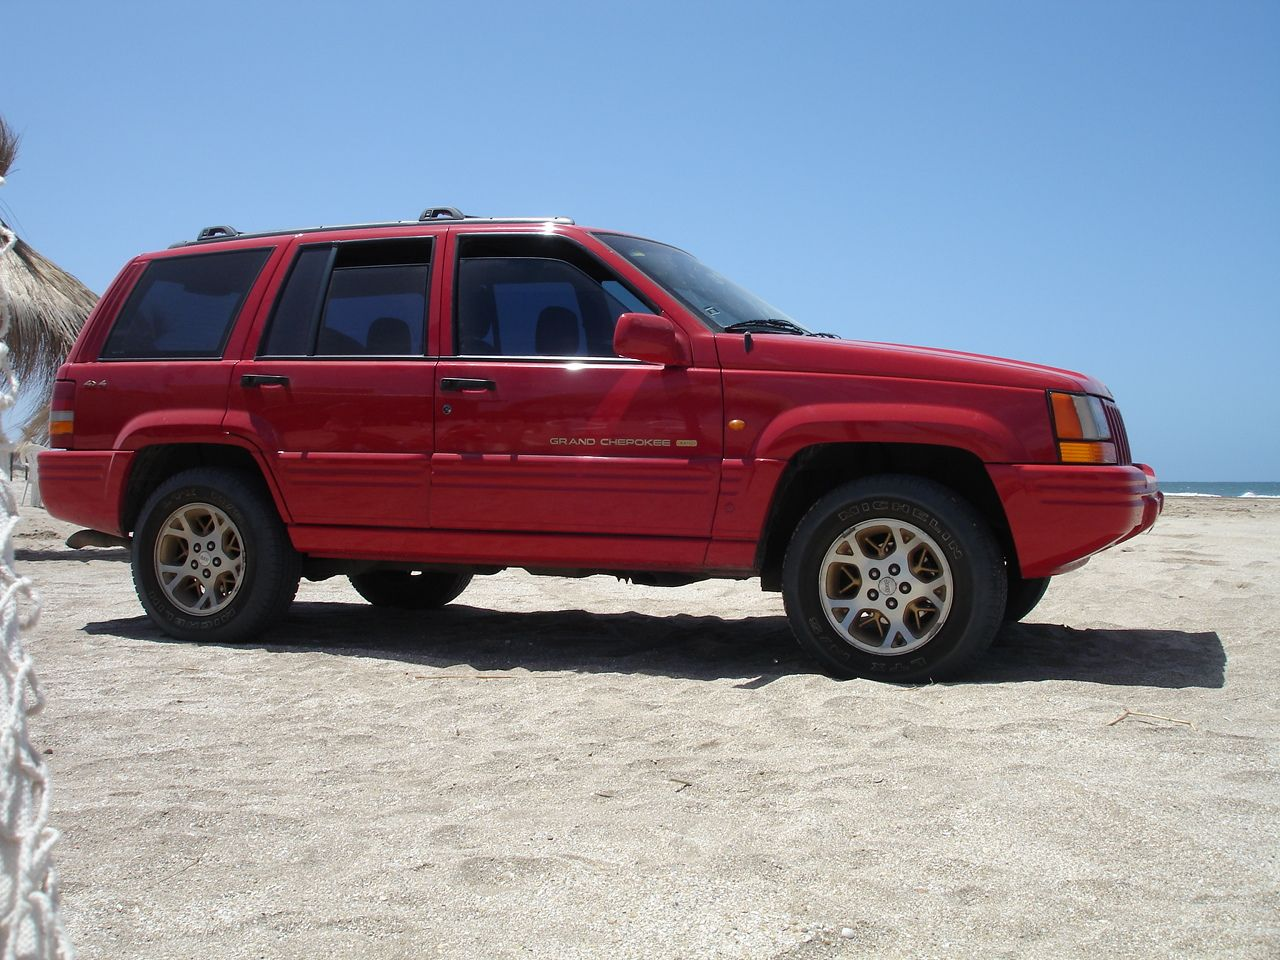 Jeep Grand Cherokee Limited · Jeep Zj · Jeep_Grand_Cherokee_Limited_1997